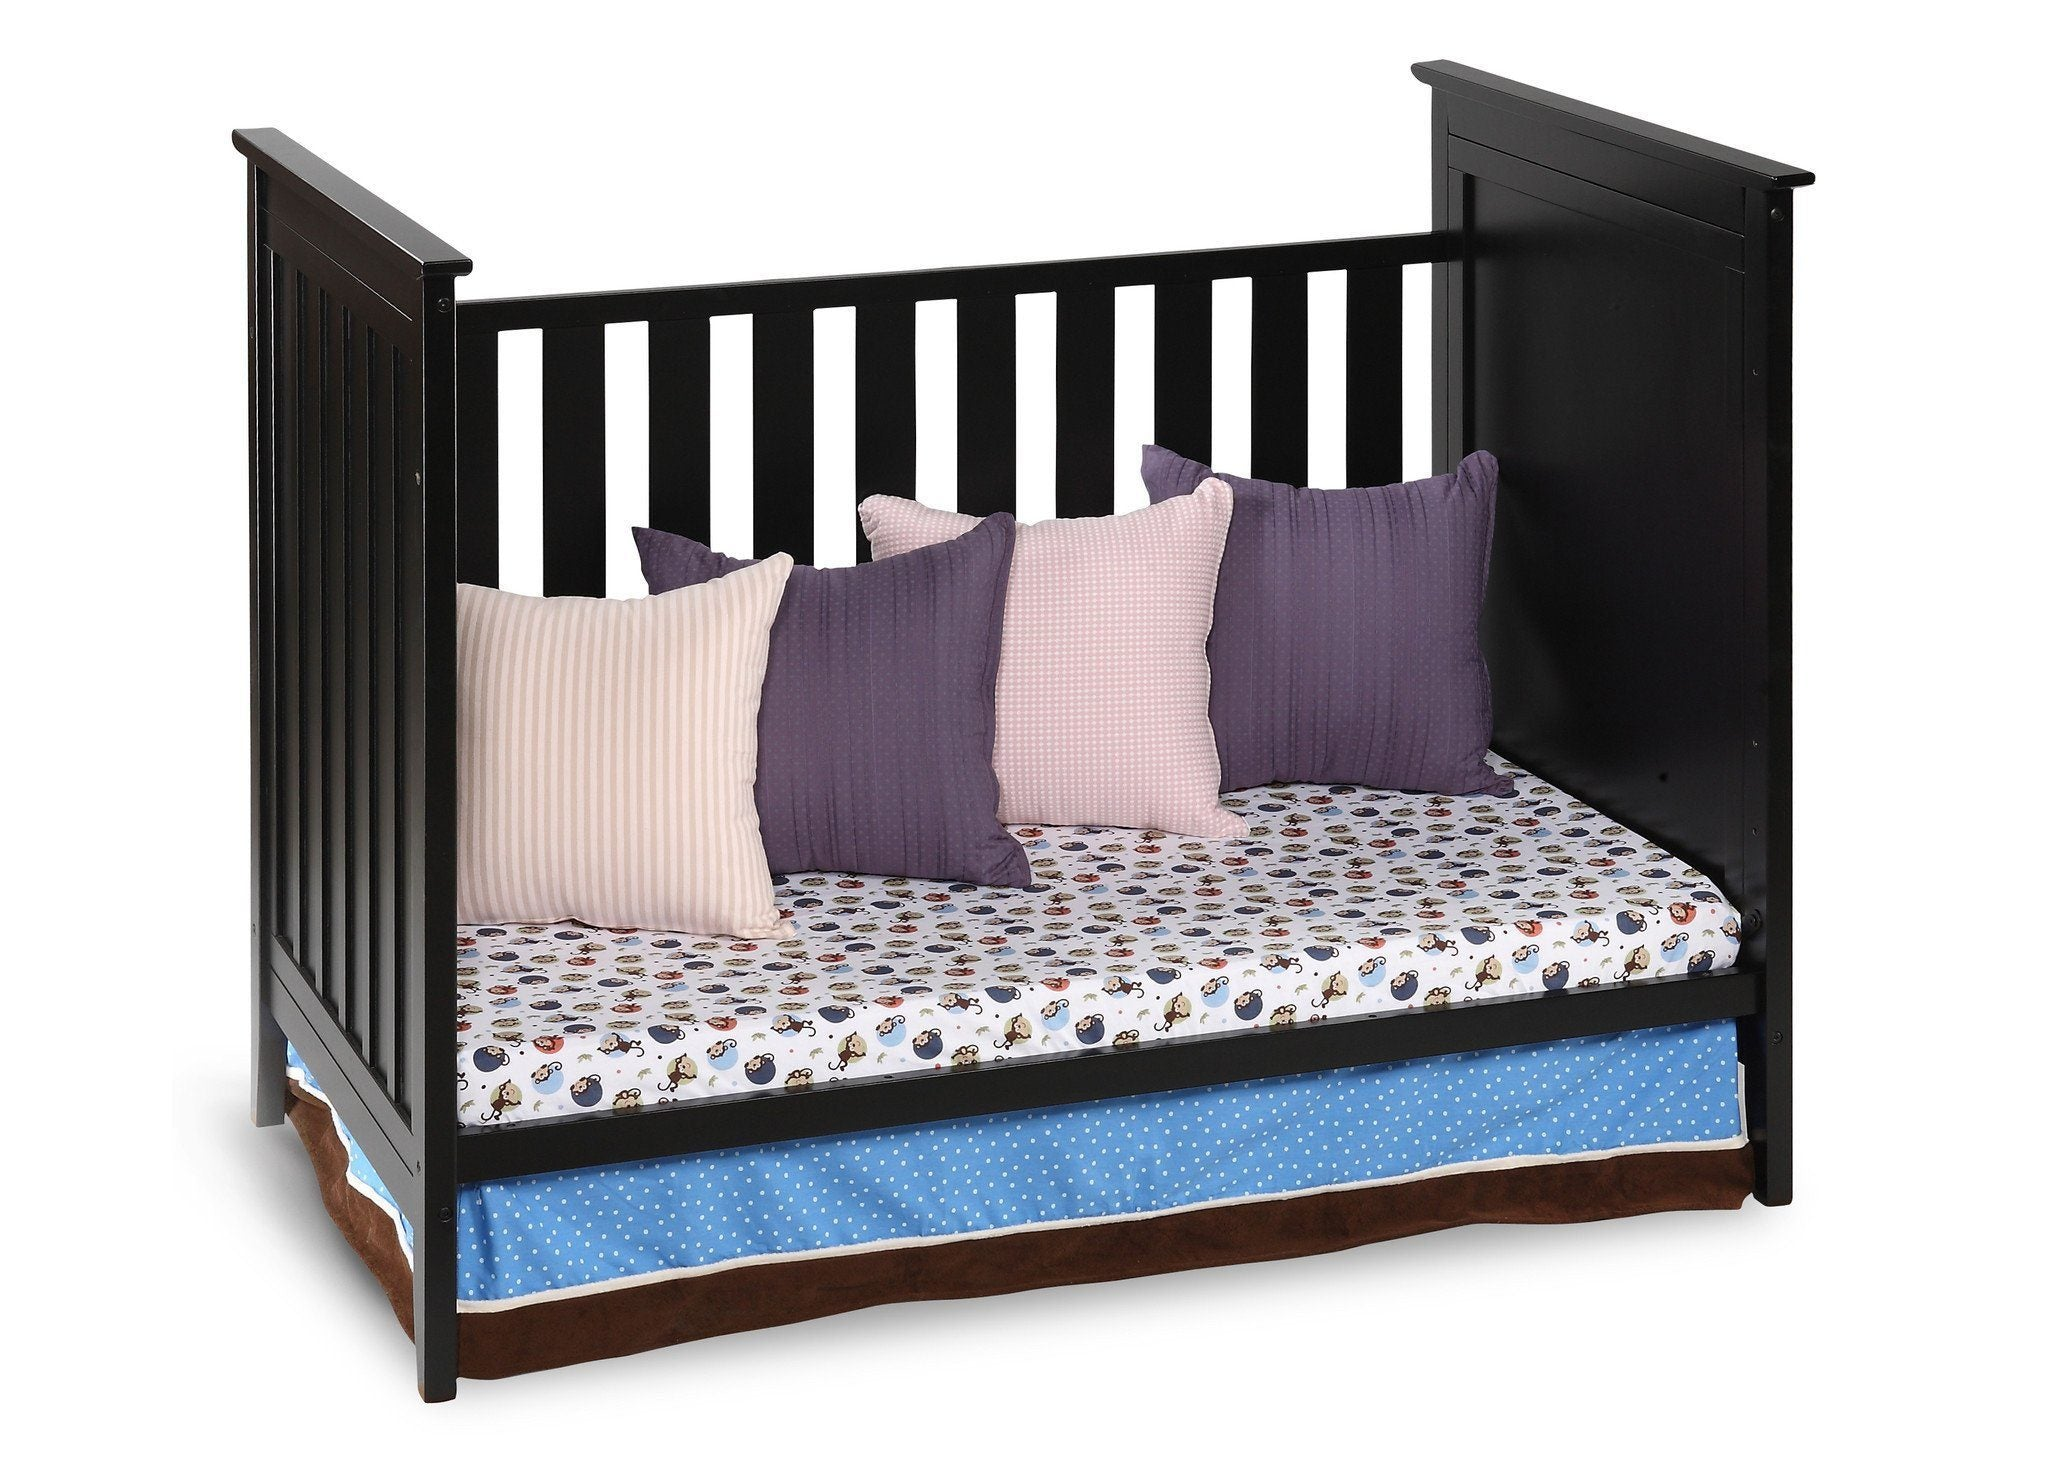 Simmons Kids Black (001) Melody 3-in-1 Crib, Day Bed Conversion a3a